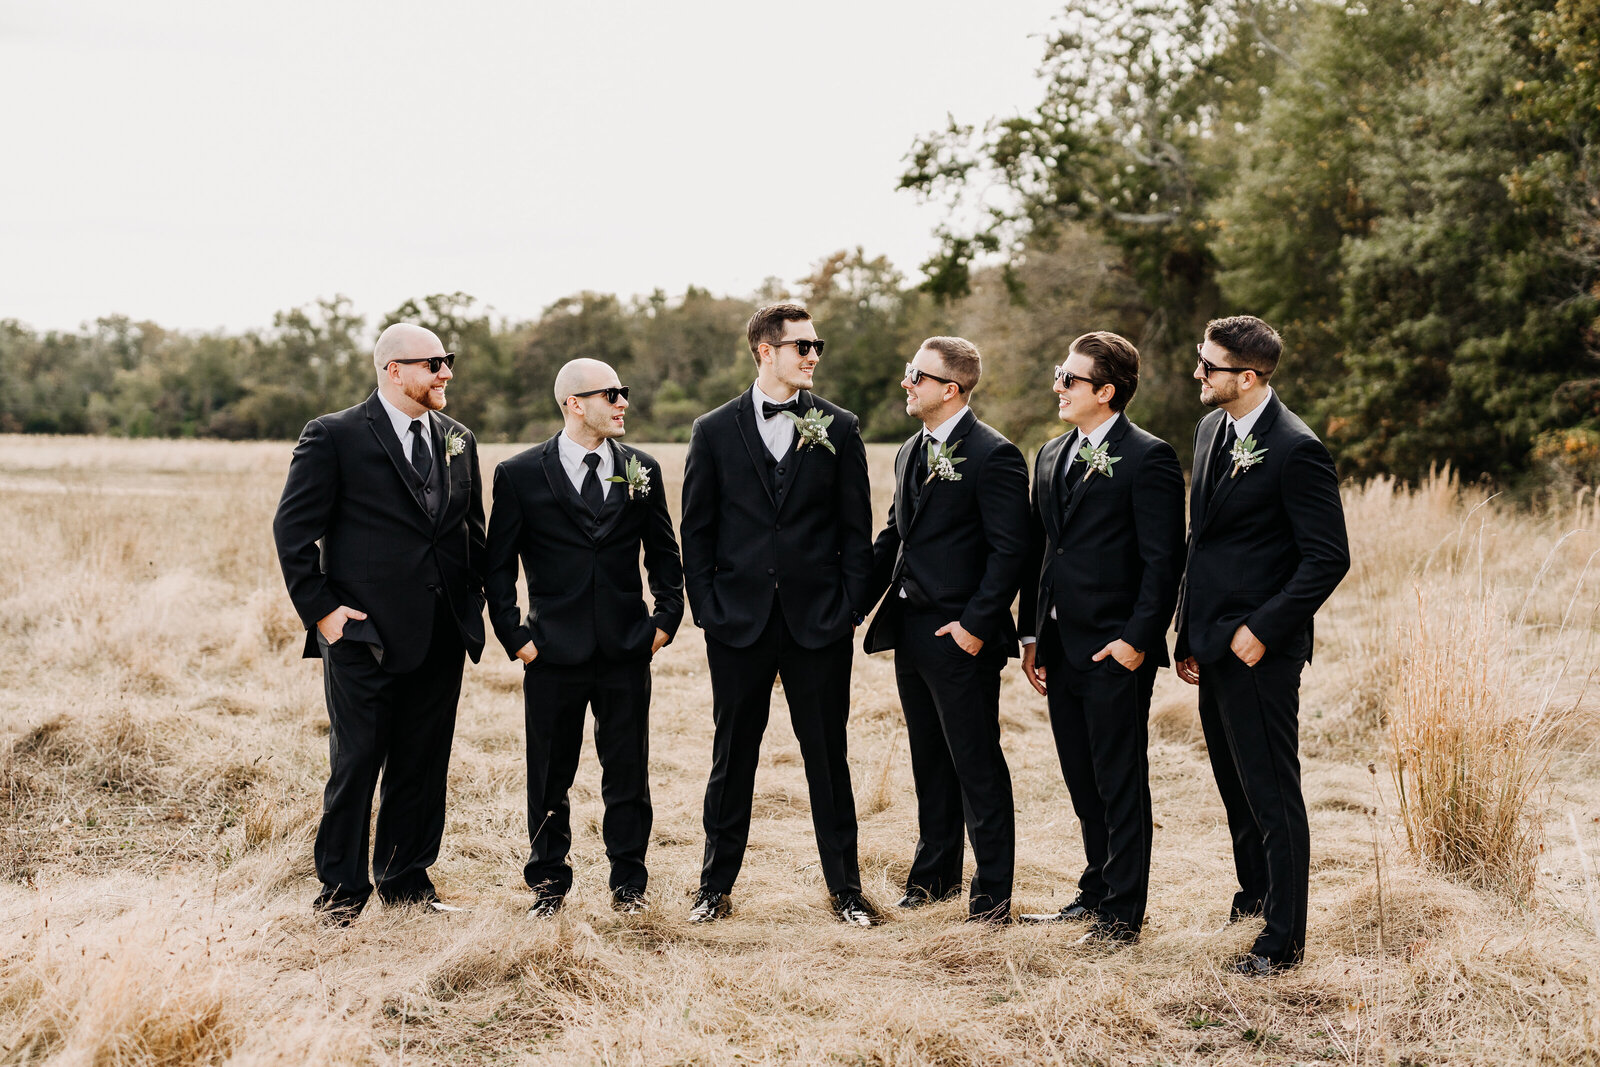 groomsmen with sunglasses